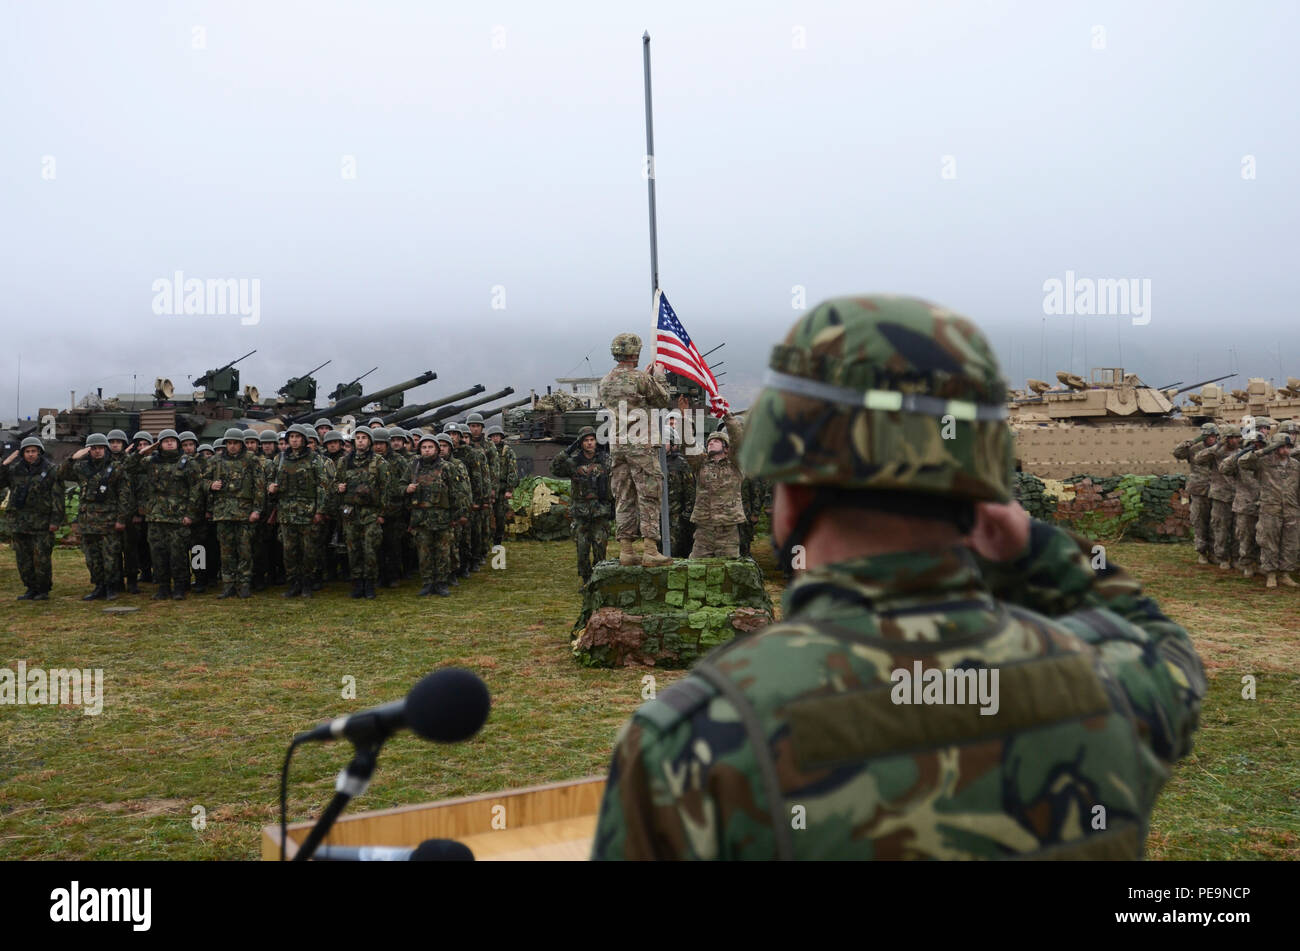 U.S. Soldiers of 5th Squadron, 7th Cavalry Regiment, 3rd Infantry Division, stationed at Fort Stewart, Ga., take the U.S. flag down representing the close of Exercise Peace Sentinel at Novo Selo Training Center, Bulgaria, Nov. 24, 2015. Peace Sentinel is a joint exercise that focuses on interoperability between the Bulgarian and U.S. forces. (U.S. Army photo by Staff Sgt. Steven M. Colvin/Released) - Stock Image